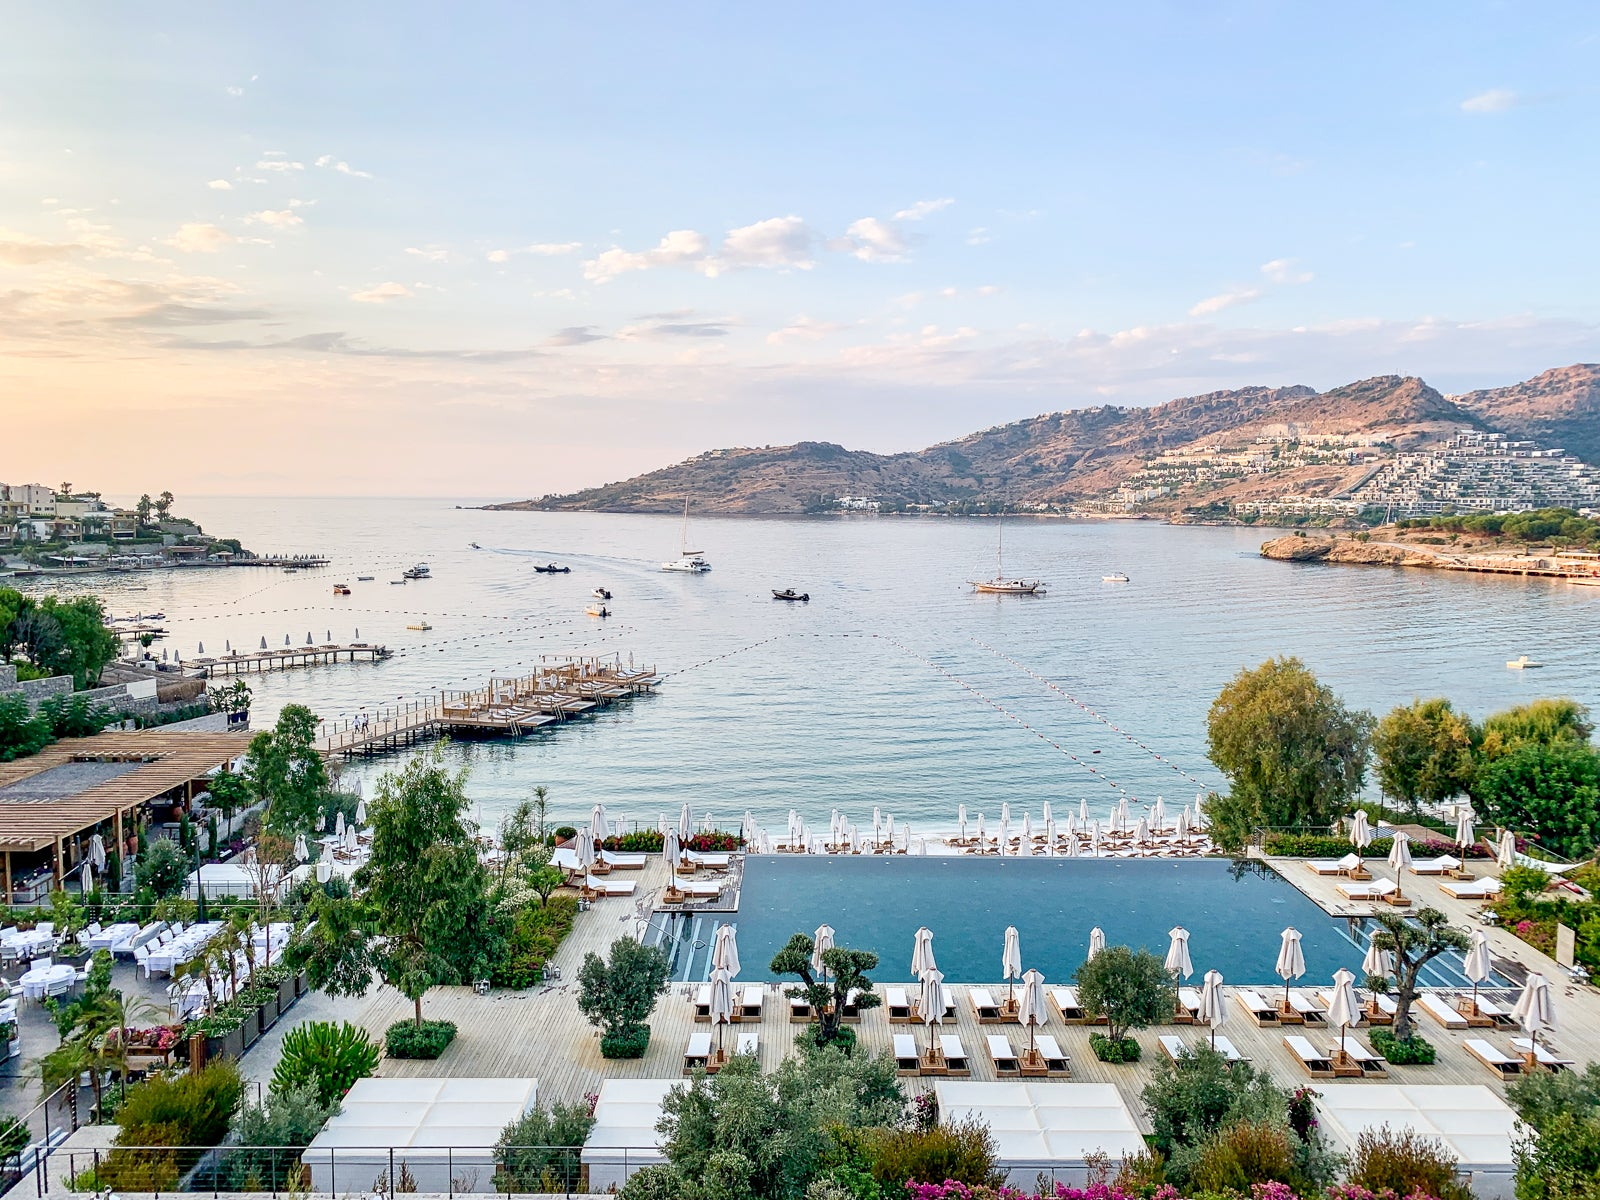 11 of the best hotels in Turkey, from Istanbul to Cappadocia - The Points Guy